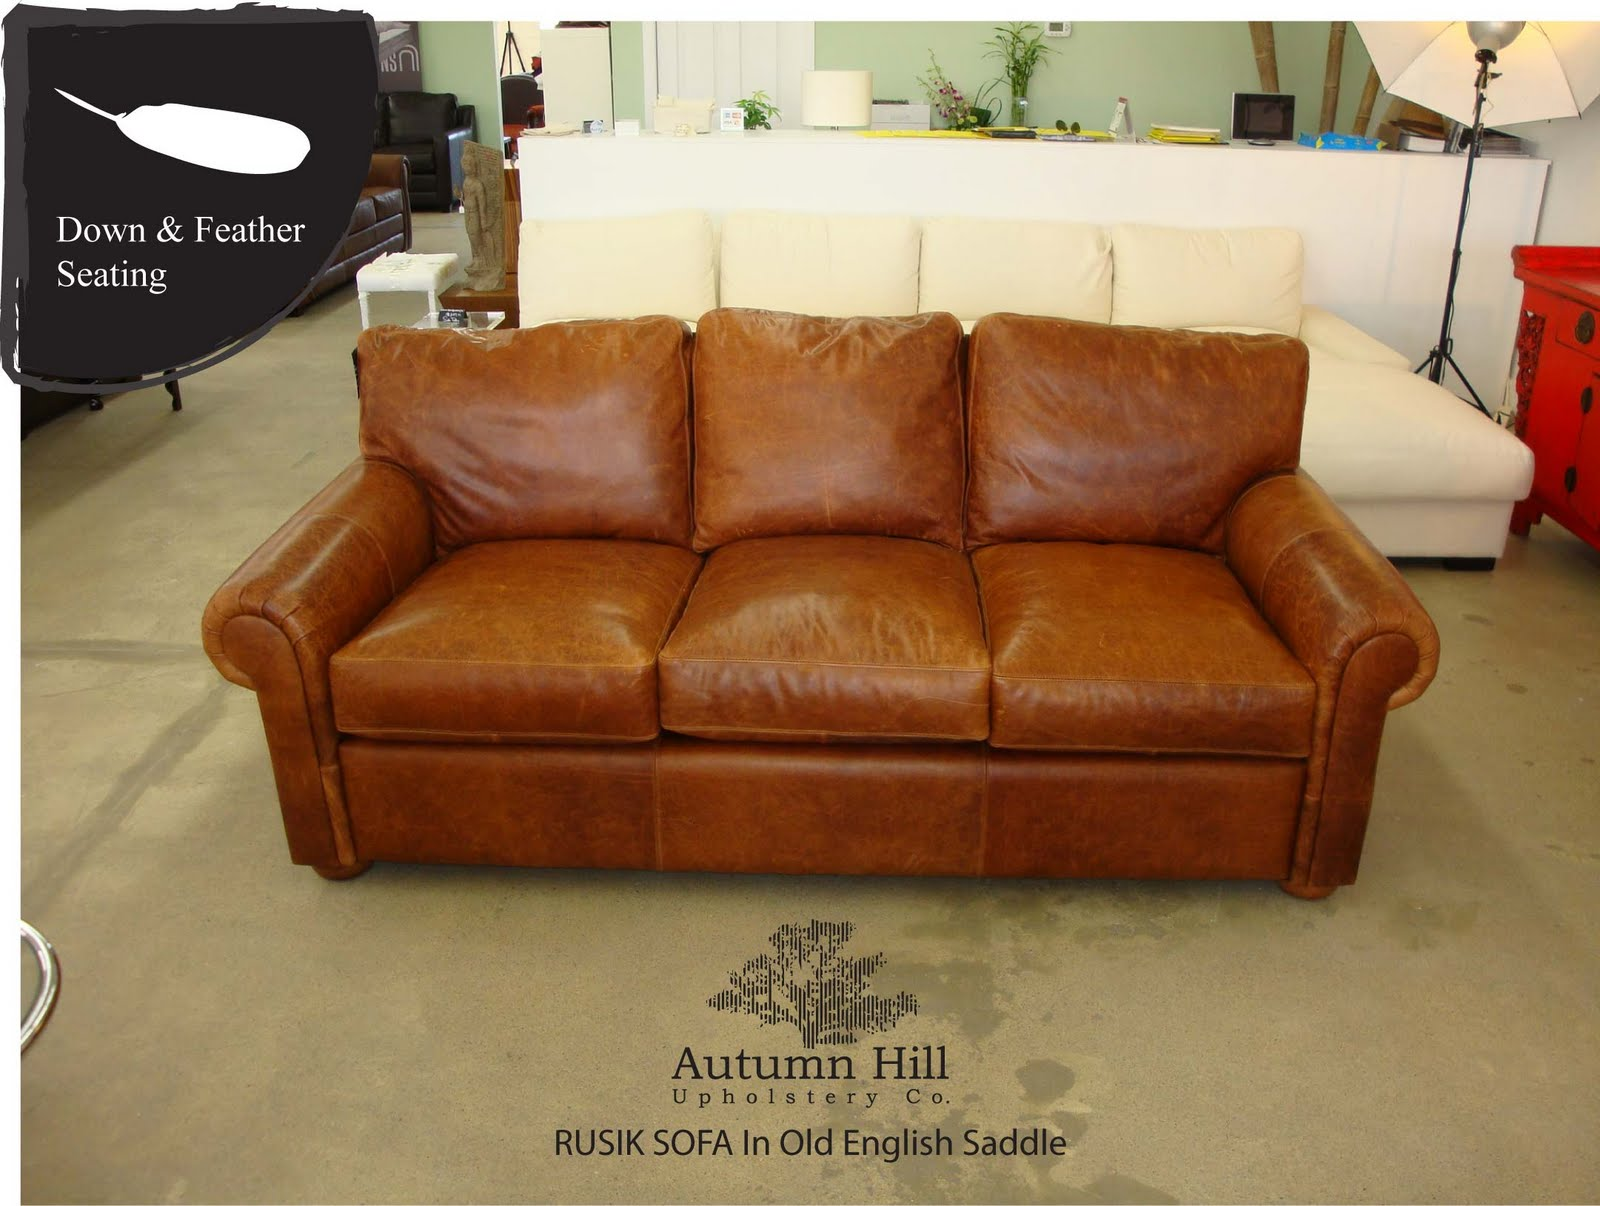 http://2.bp.blogspot.com/_IIa-2iRjKZE/S8TCC3EkgUI/AAAAAAAAABs/F7GmTRorbYM/s1600/Rusik+Sofa+In+Old+English+Saddle.jpg